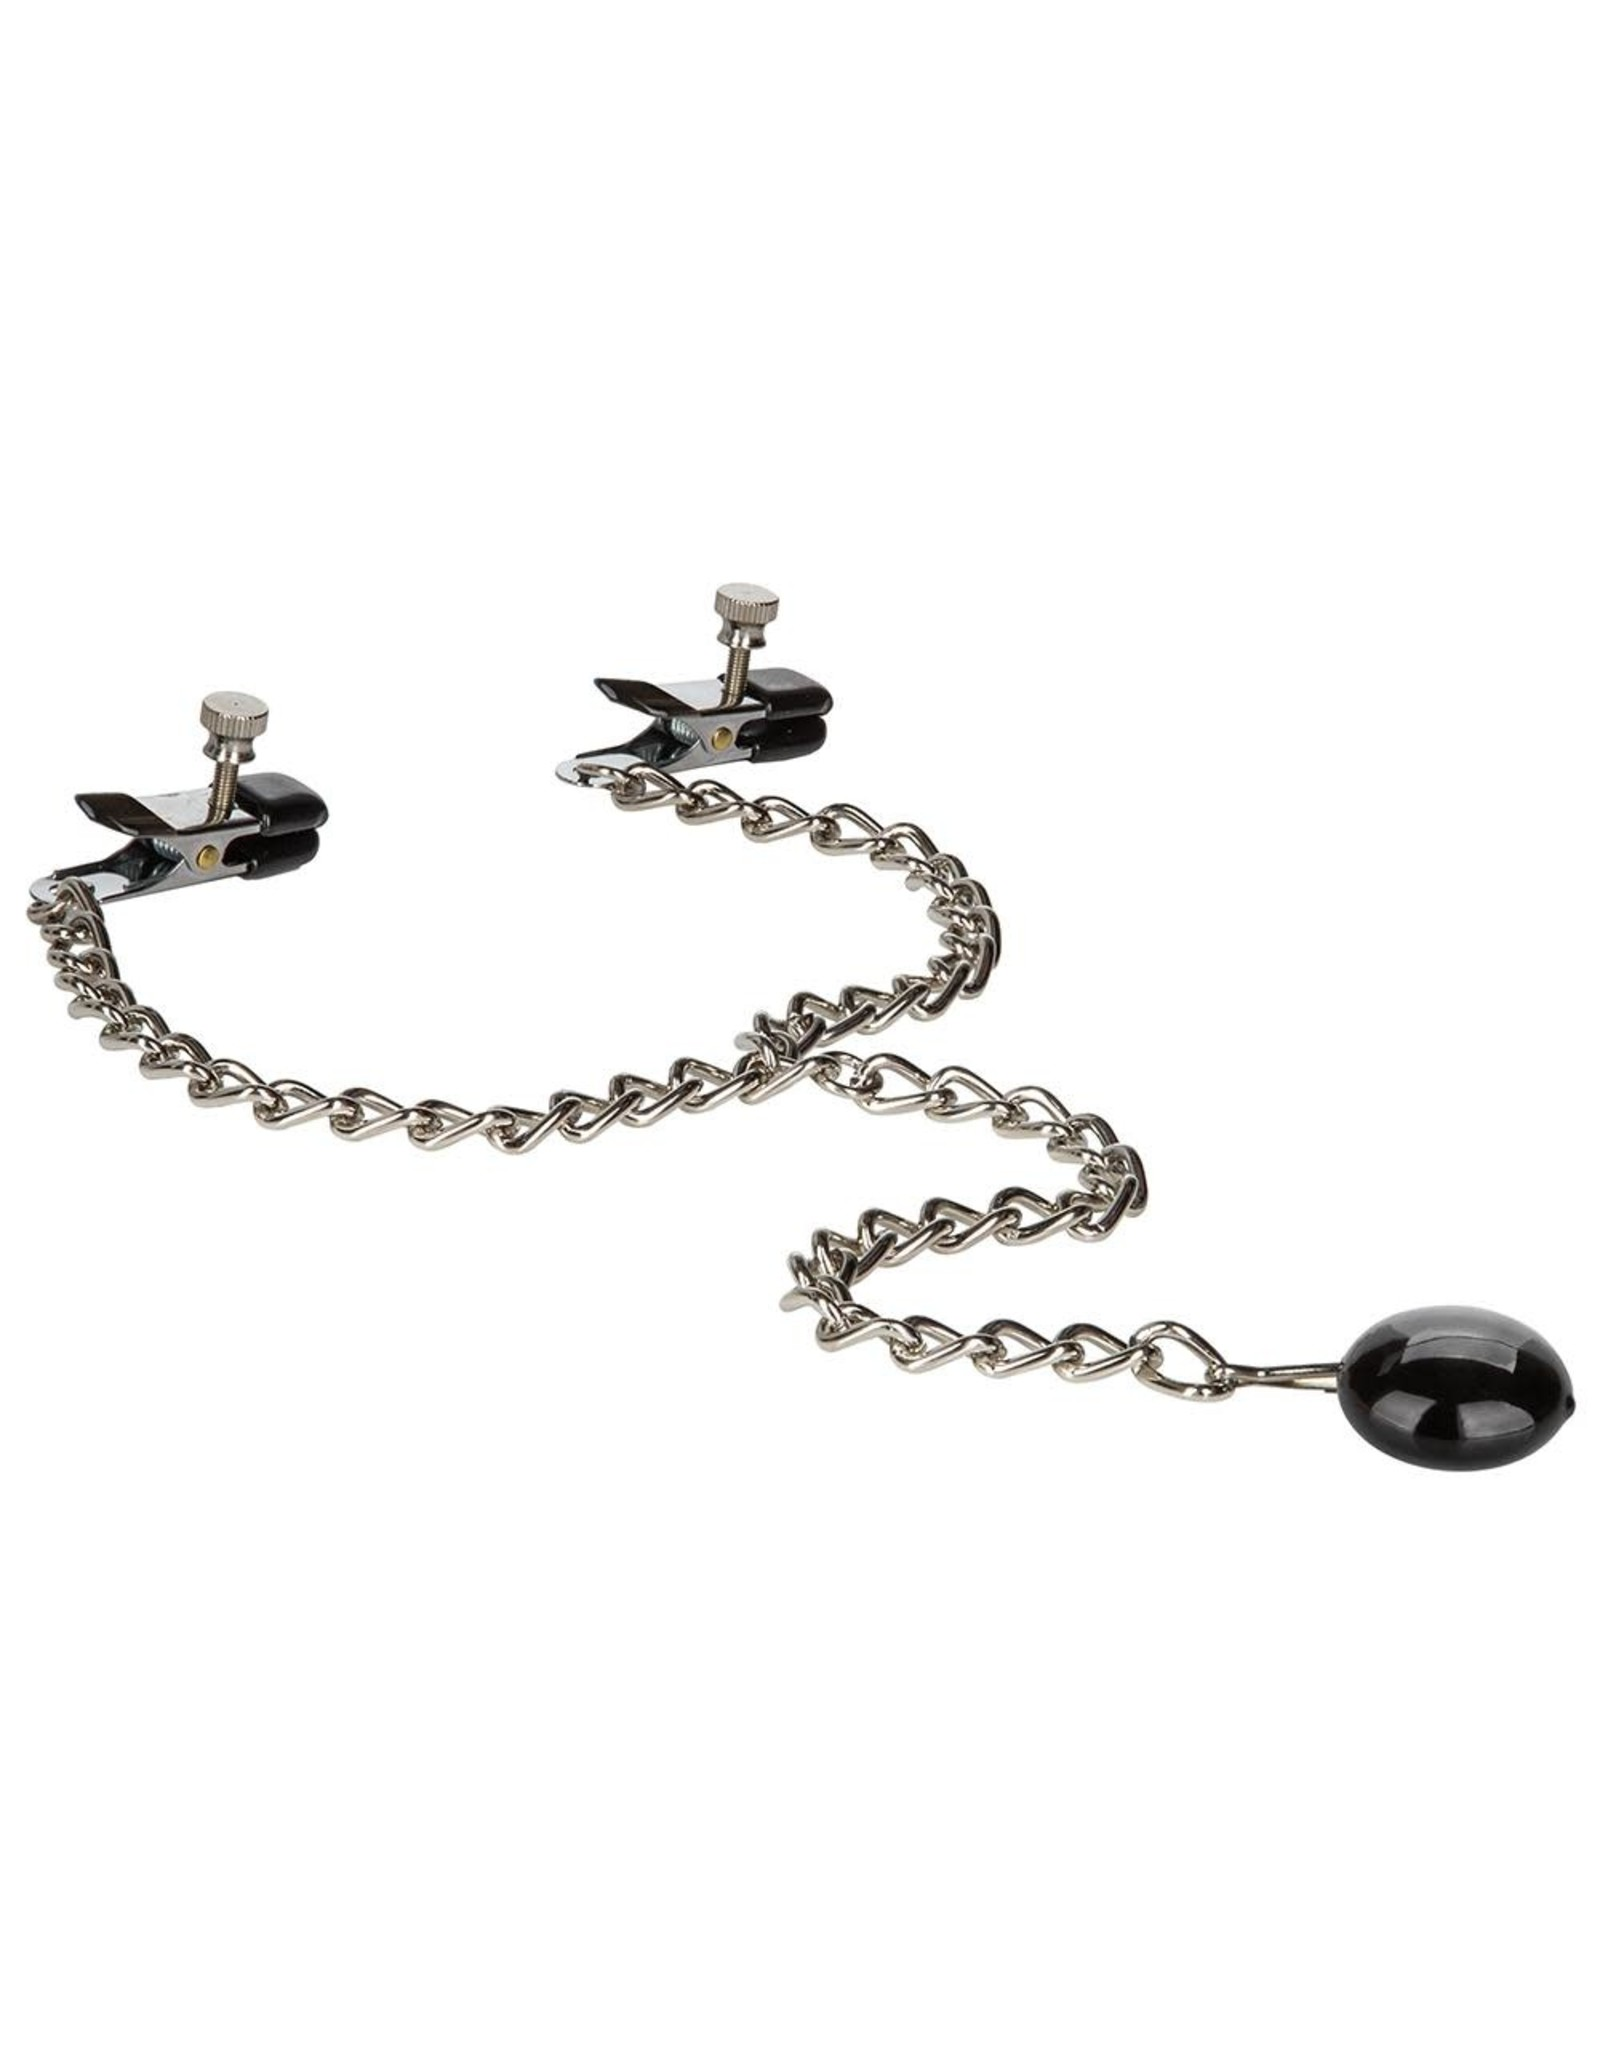 CALEXOTICS CALEXOTICS - NIPPLE PLAY - WEIGHTED DISC NIPPLE CLAMPS